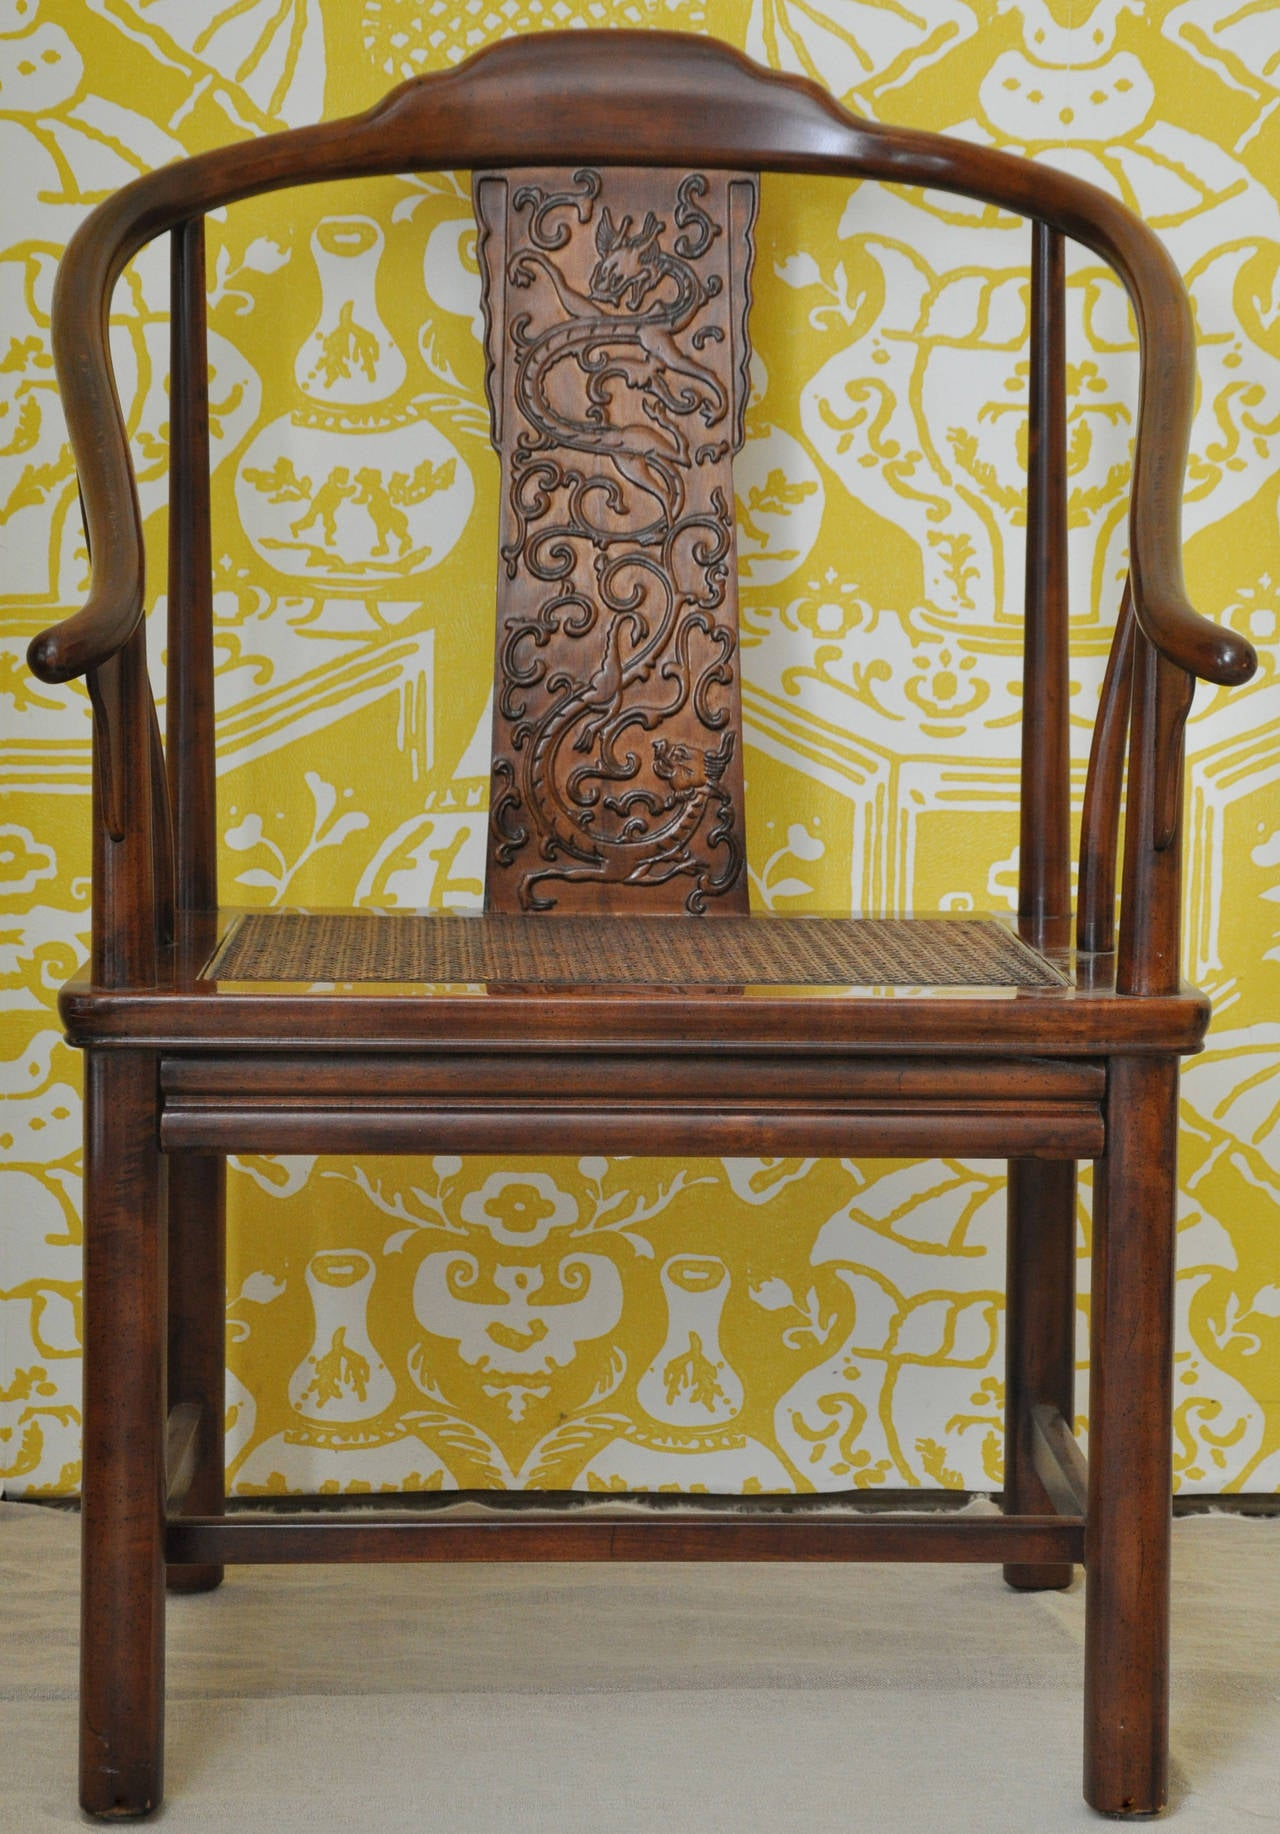 henredon asian dining chairs leather zero gravity set of six style by furniture at 1stdibs